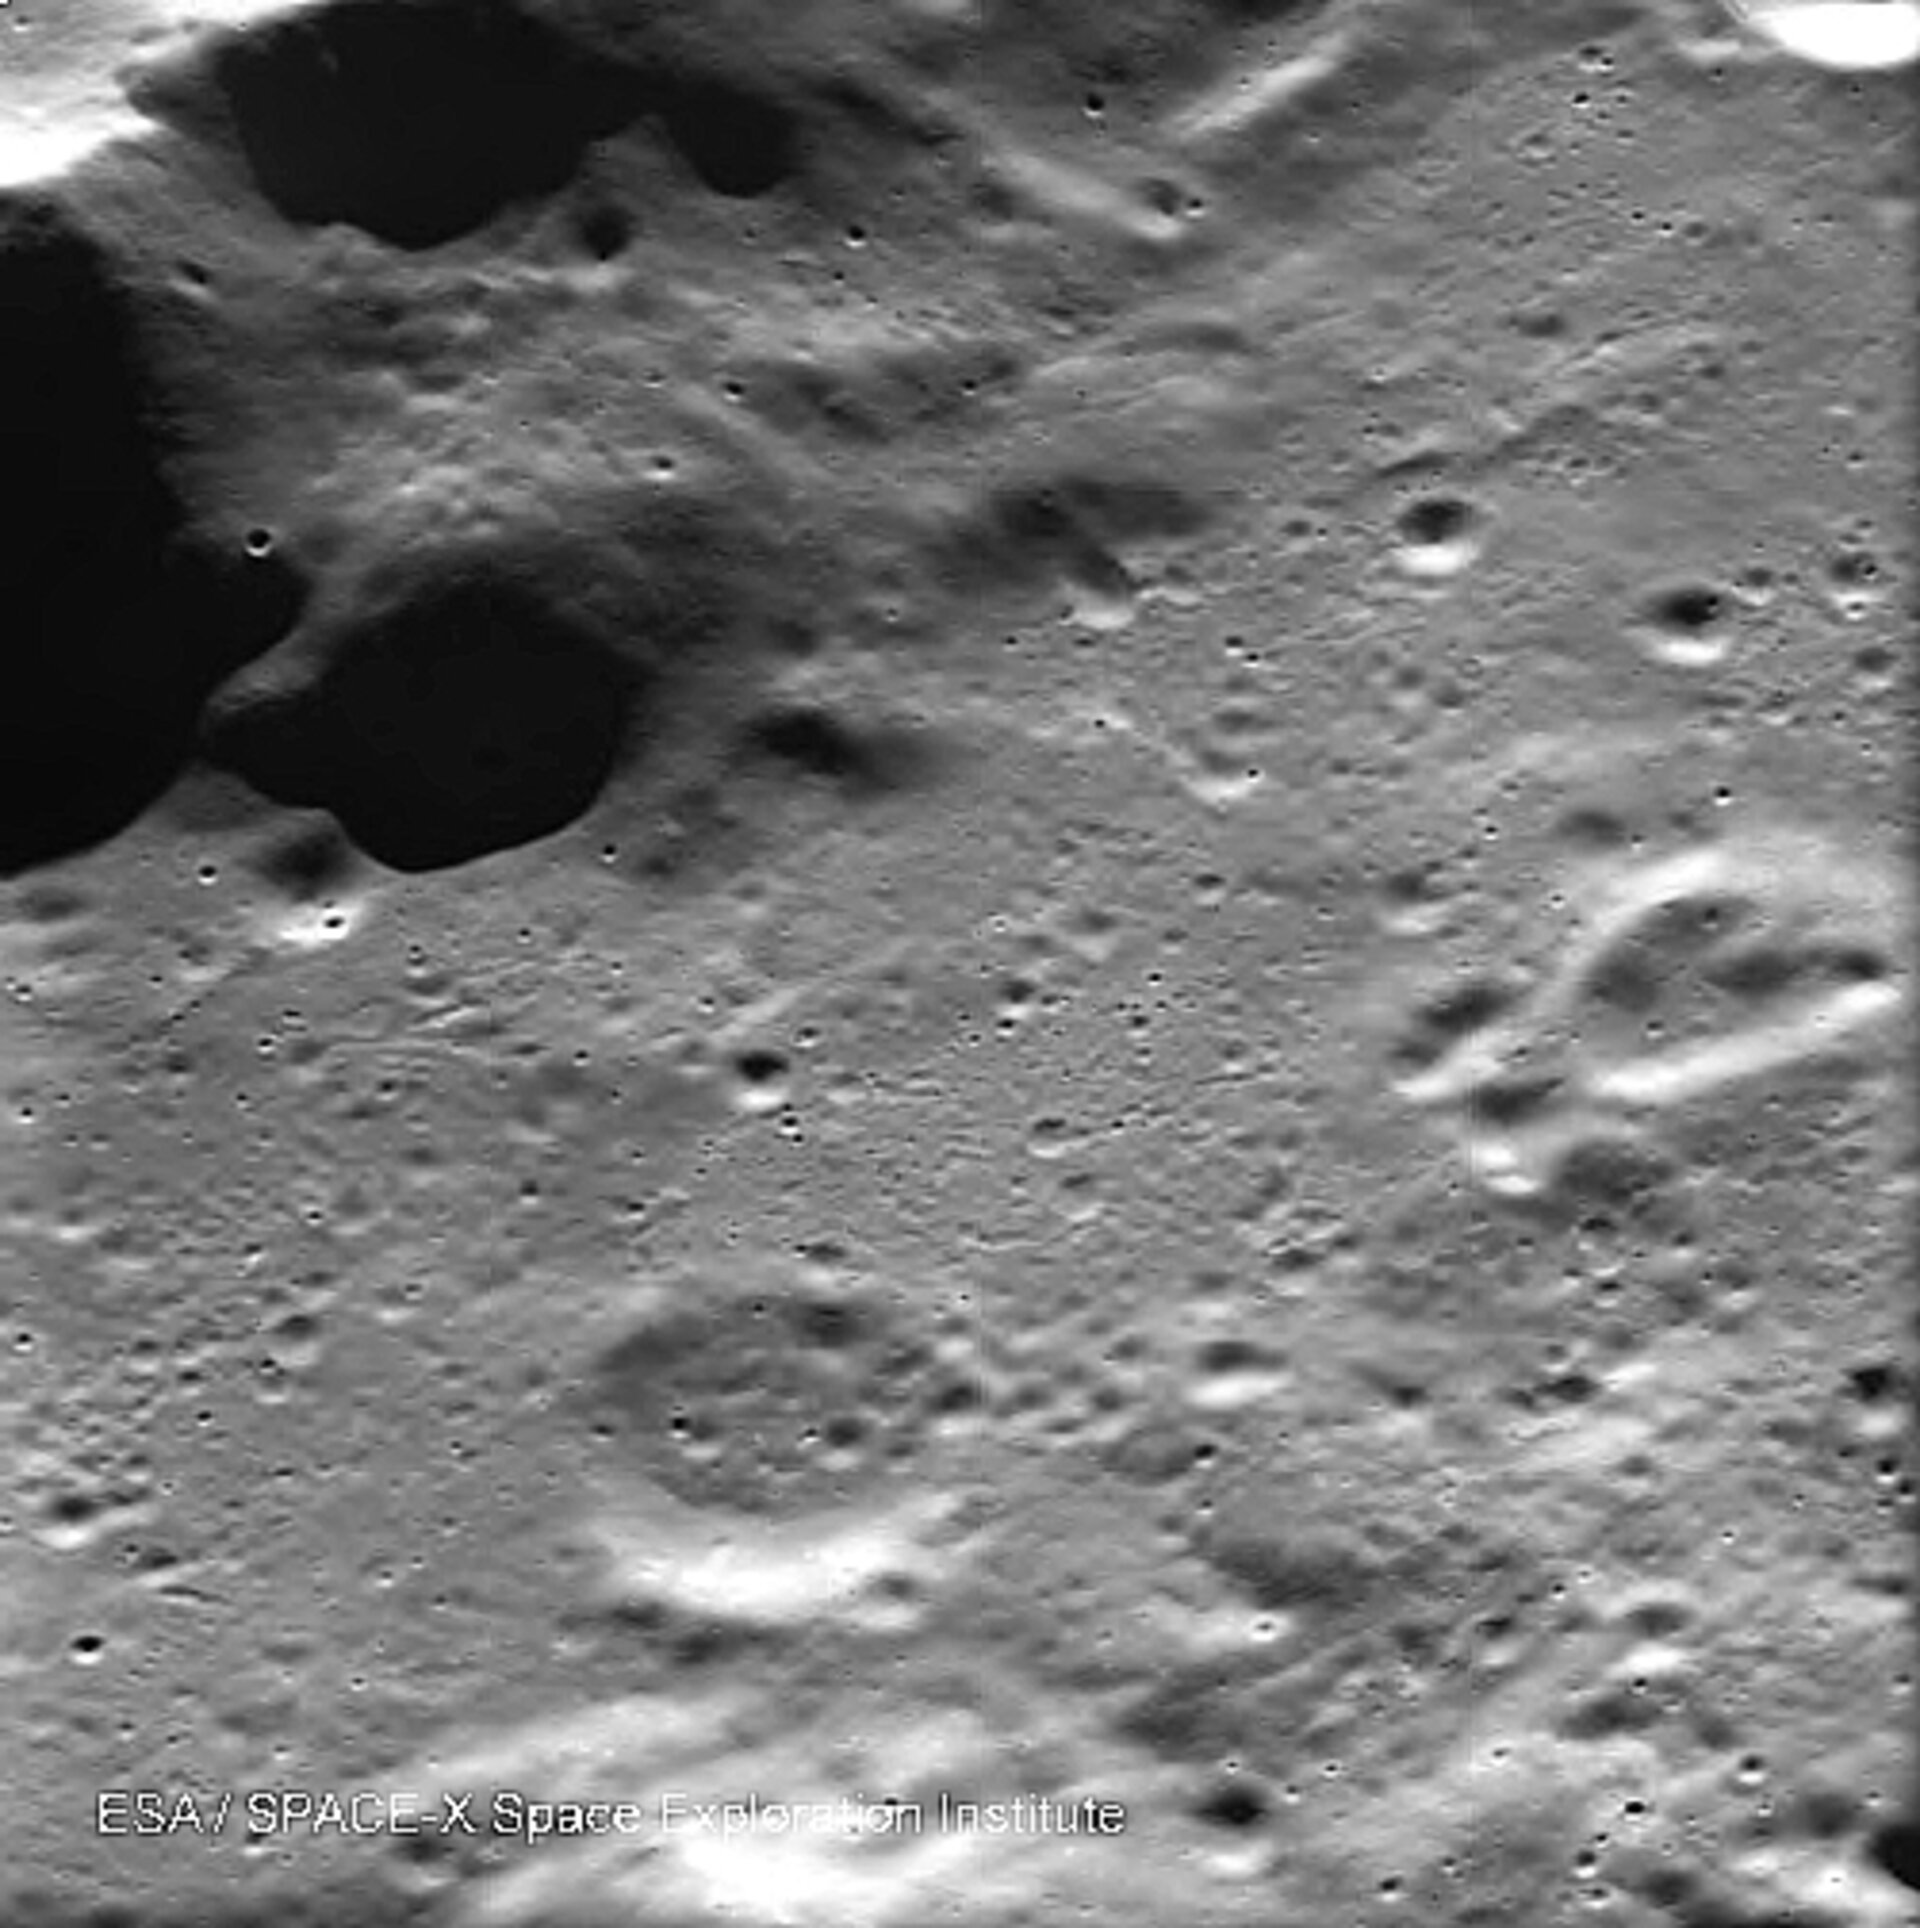 Impact 'spots' on the Moon